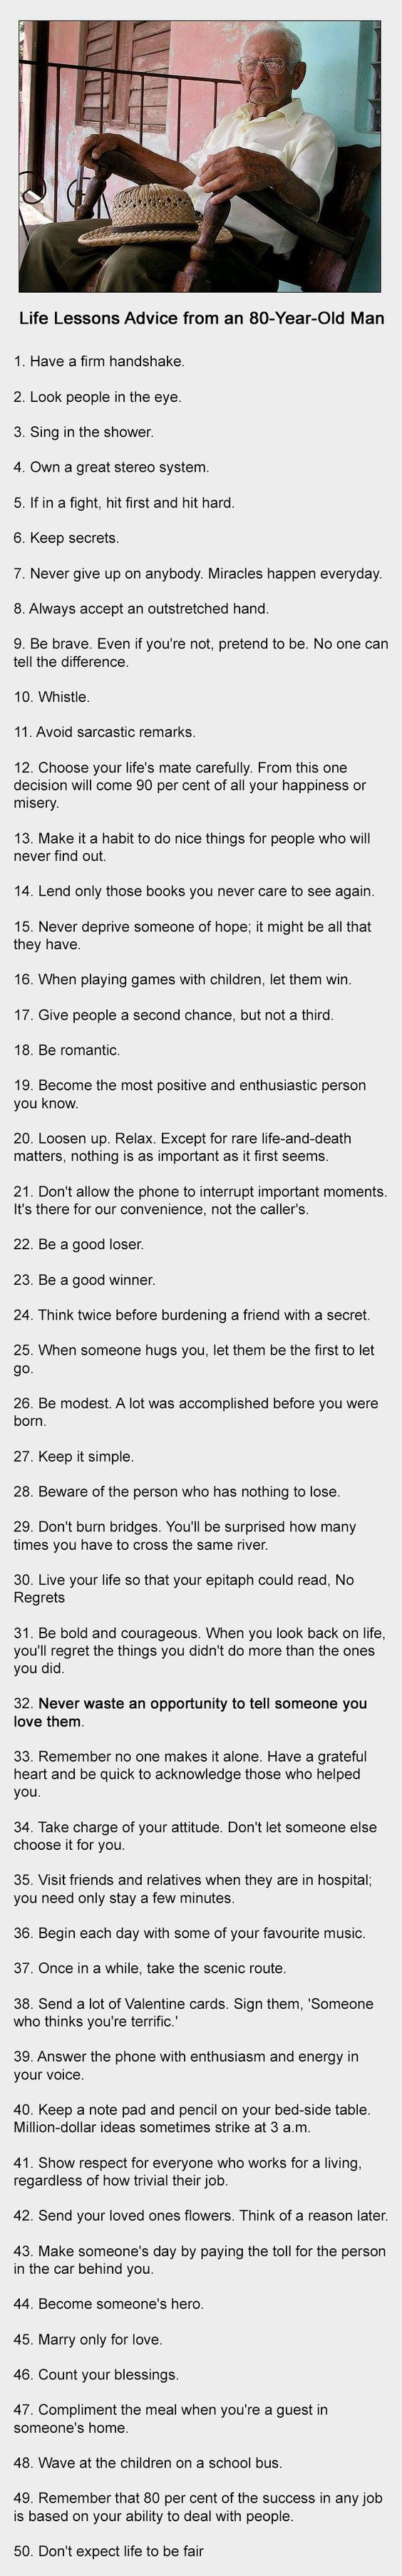 10 wise advice for women for 35 from personal experience